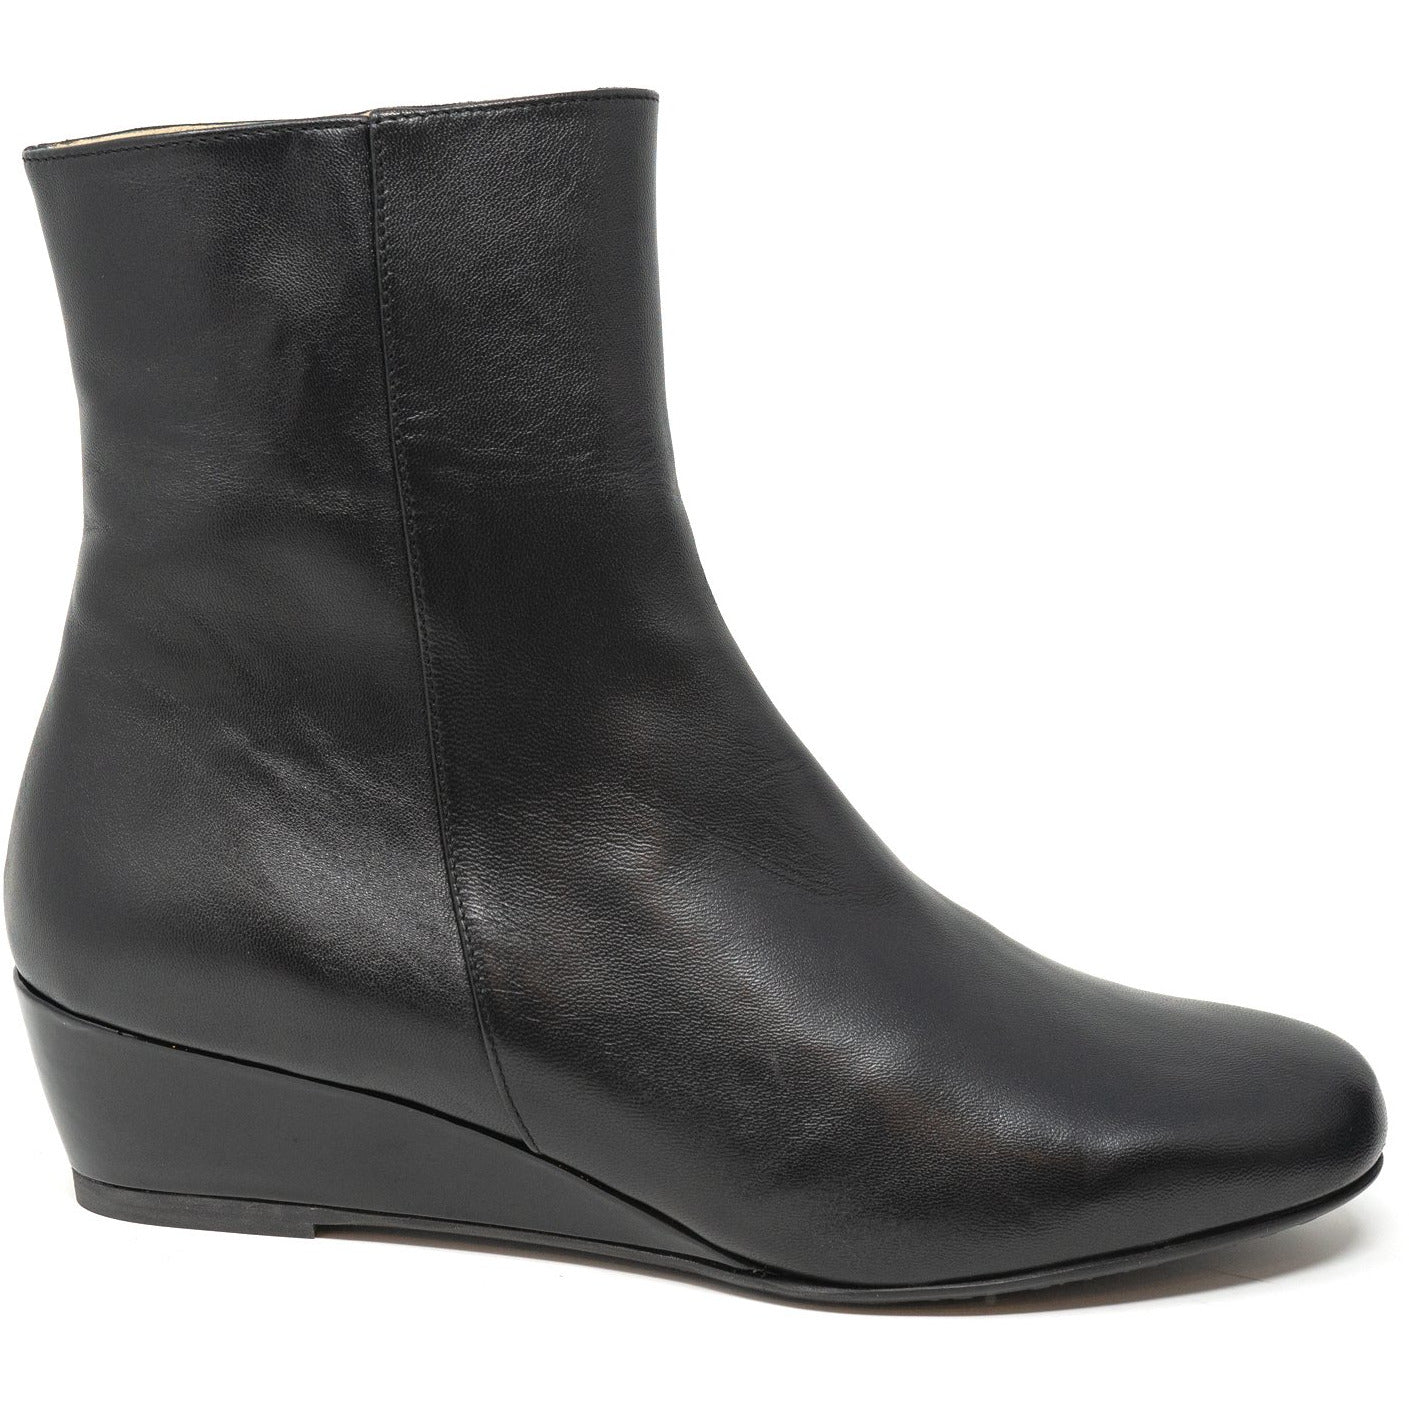 Women Ankle Wedge Boots in Black - Jennifer Tattanelli